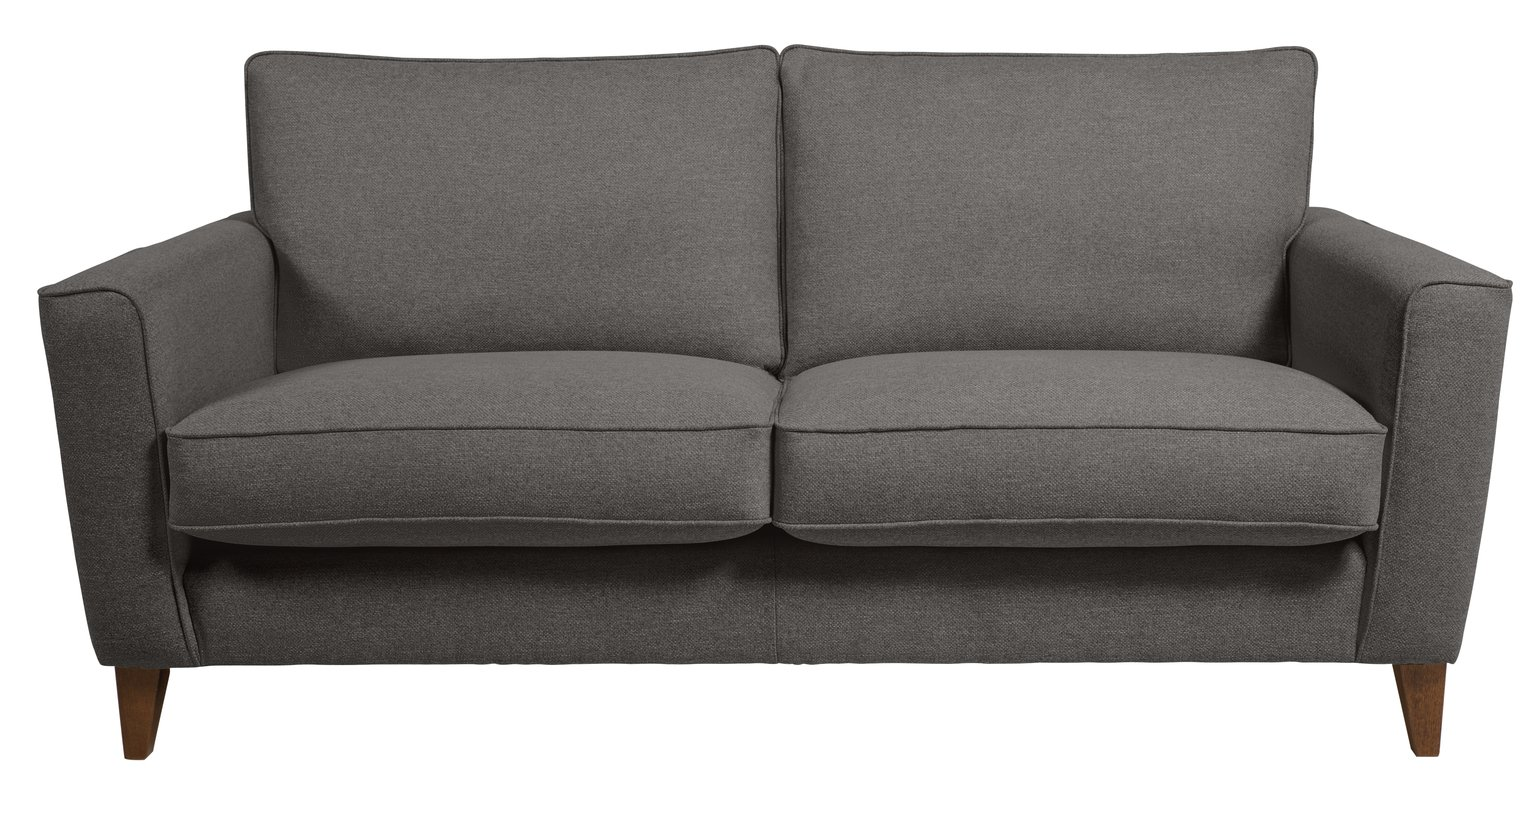 Argos Home Aspen 3 Seater Fabric Sofa - Charcoal